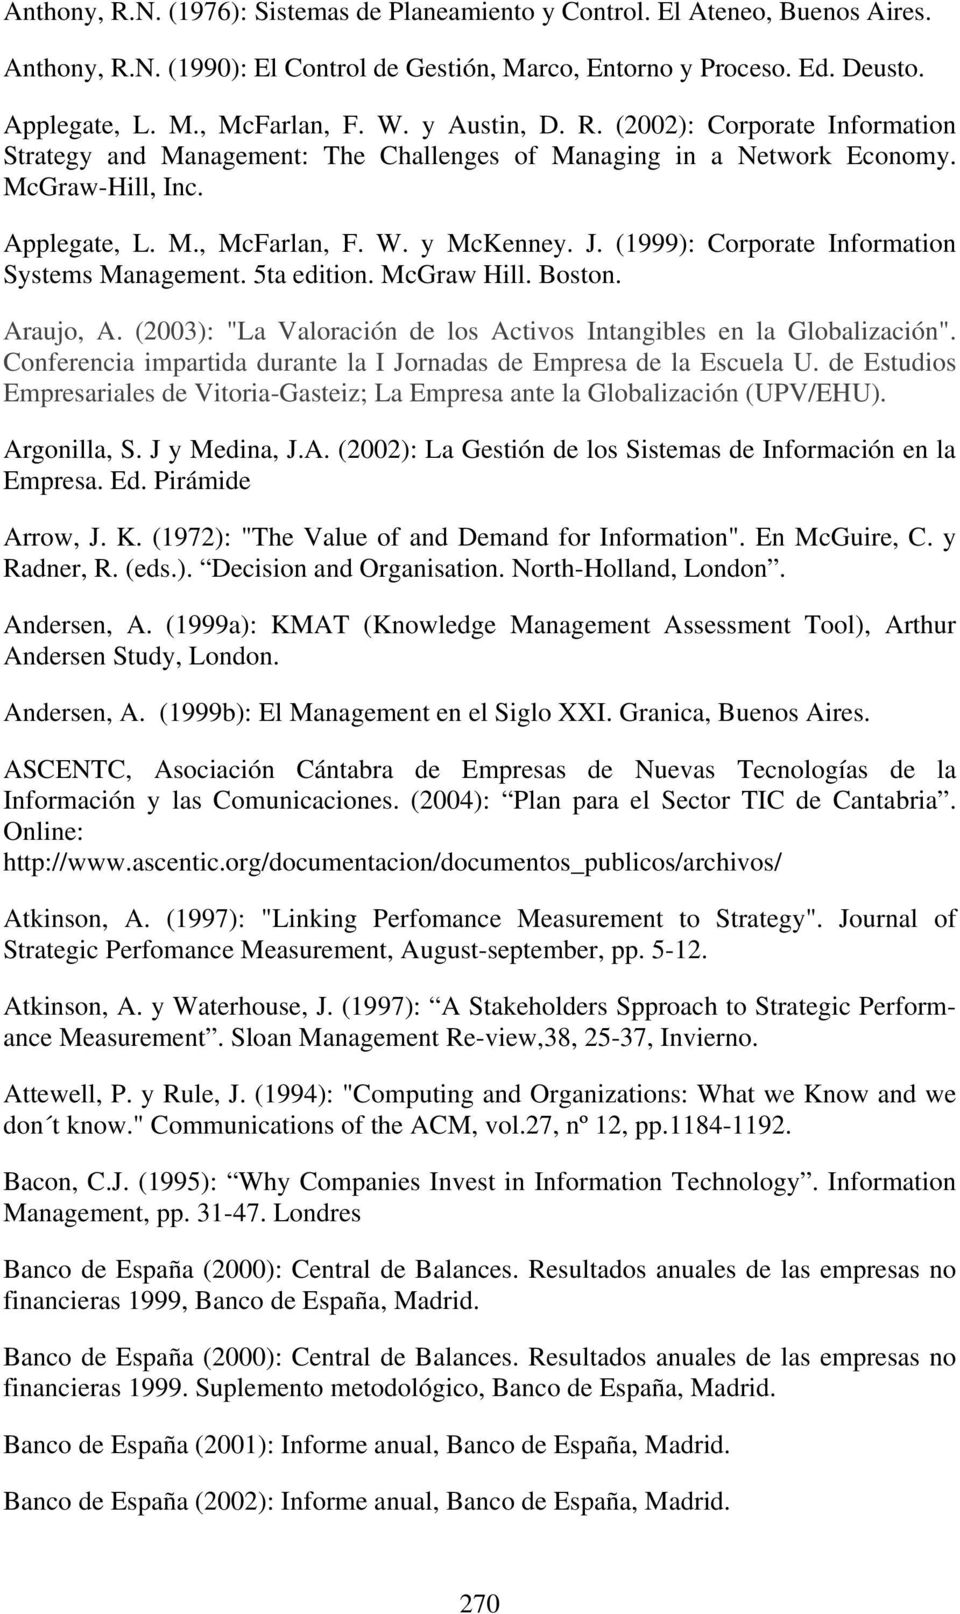 "(1999): Corporate Information Systems Management. 5ta edition. McGraw Hill. Boston. Araujo, A. (2003): ""La Valoración de los Activos Intangibles en la Globalización""."